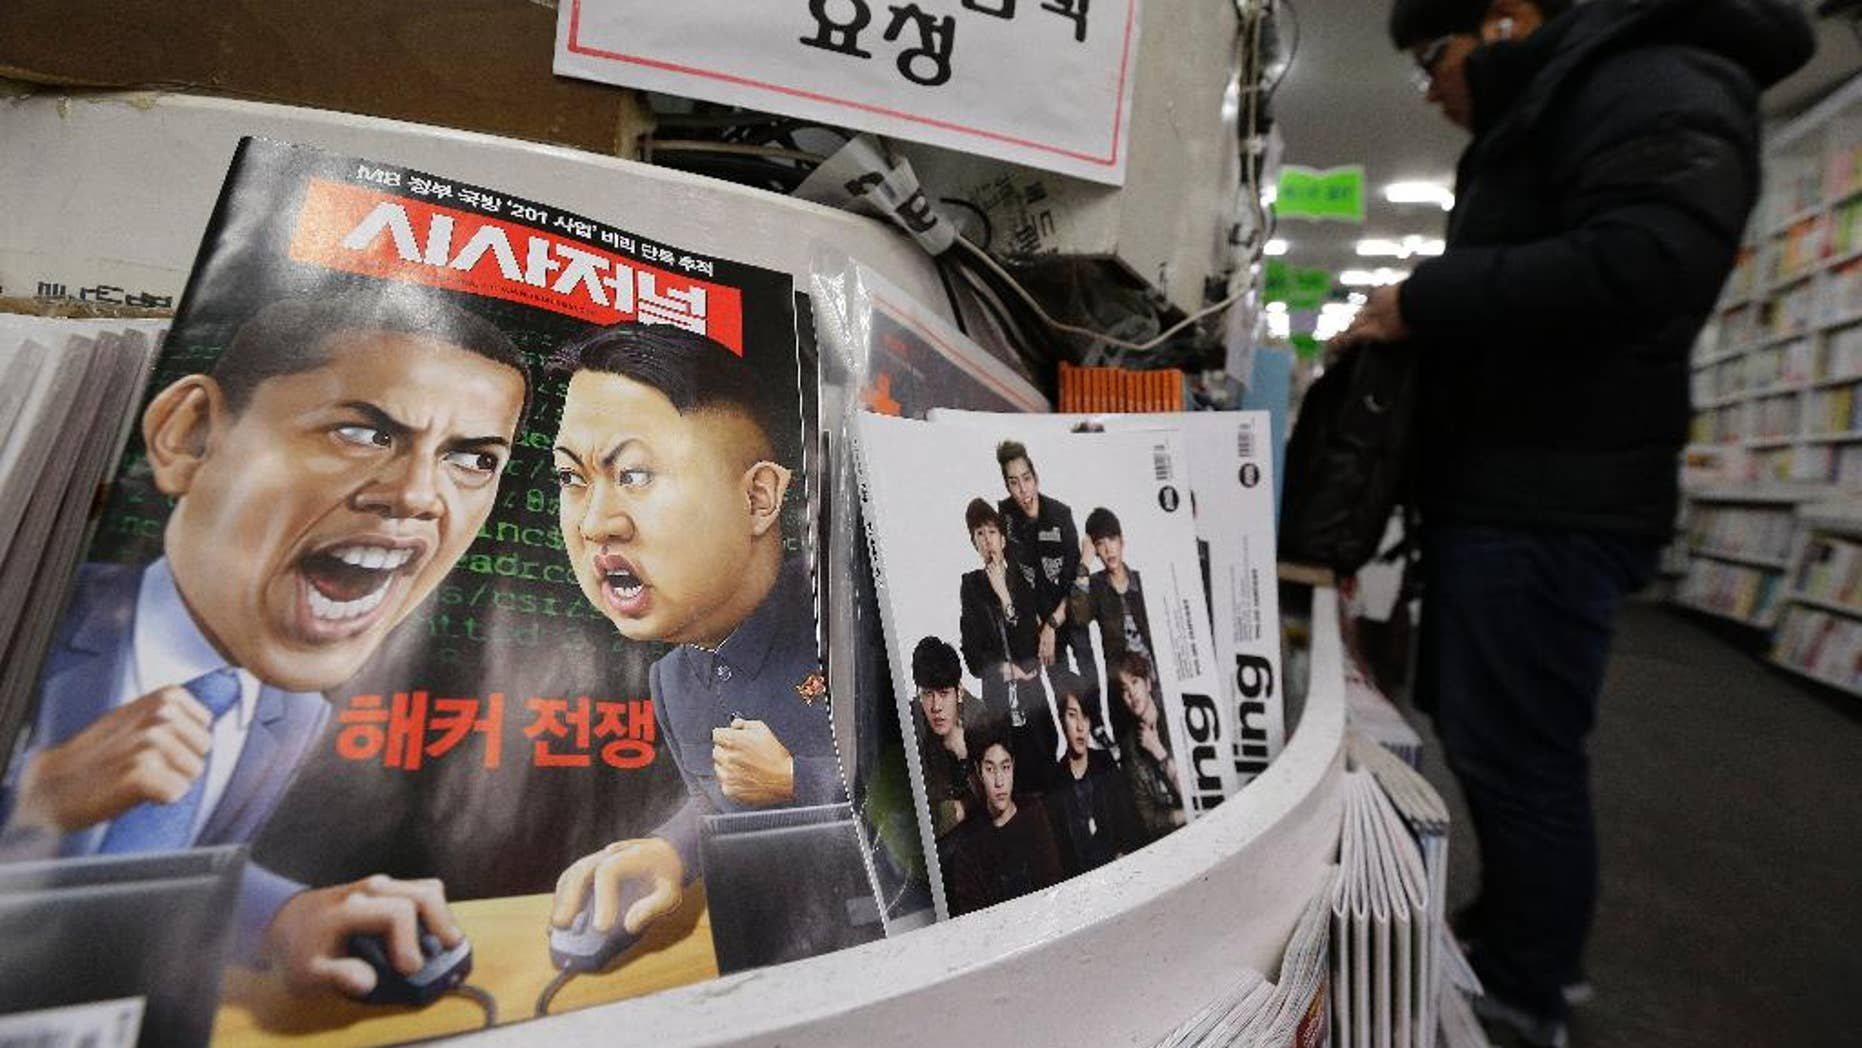 """In this Saturday, Jan. 3, 2015 photo, a magazine with caricatures of U.S. President Barack Obama, left, and North Korean leader Kim Jong Un is displayed at a book store in Seoul, South Korea. The United States imposed new sanctions Friday on North Korean government officials and the country's defense industry for a cyberattack against Sony, insisting that Pyongyang was to blame despite lingering doubts by the cyber community. The red letters on the magazine read """" Hacker War."""" (AP Photo/Ahn Young-joon)"""